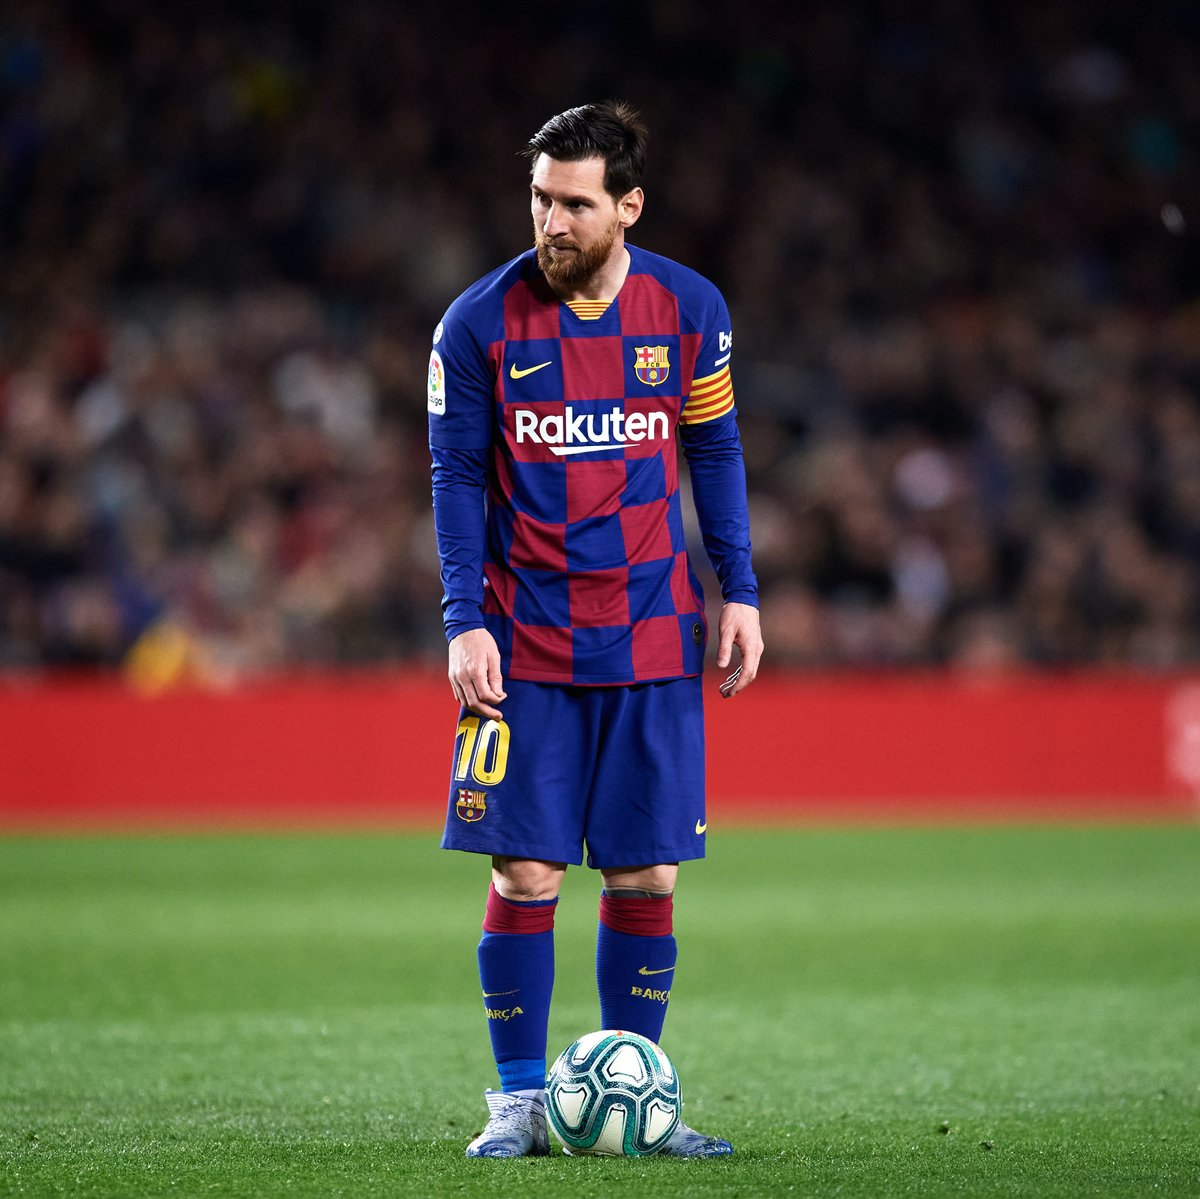 Goal On Twitter Barcelona Have Opened Contract Talks With Lionel Messi With His Current Deal Due To Expire Next Summer According To Mundo Deportivo Marc Andre Ter Stegen Is Also Claimed To Be